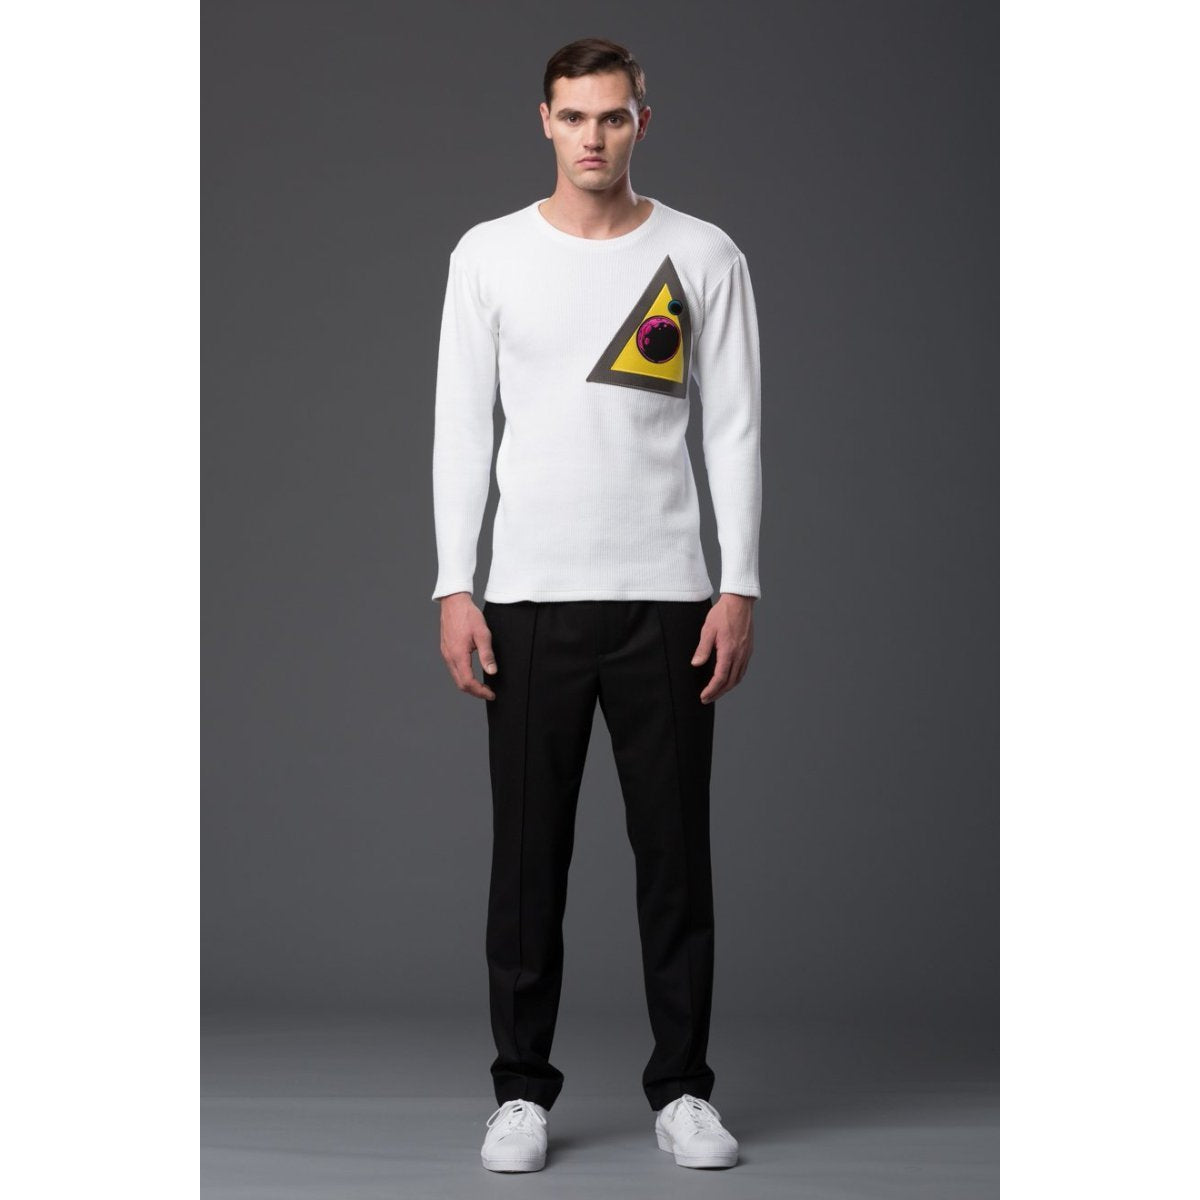 NP Elliott White Long Sleeve Tee